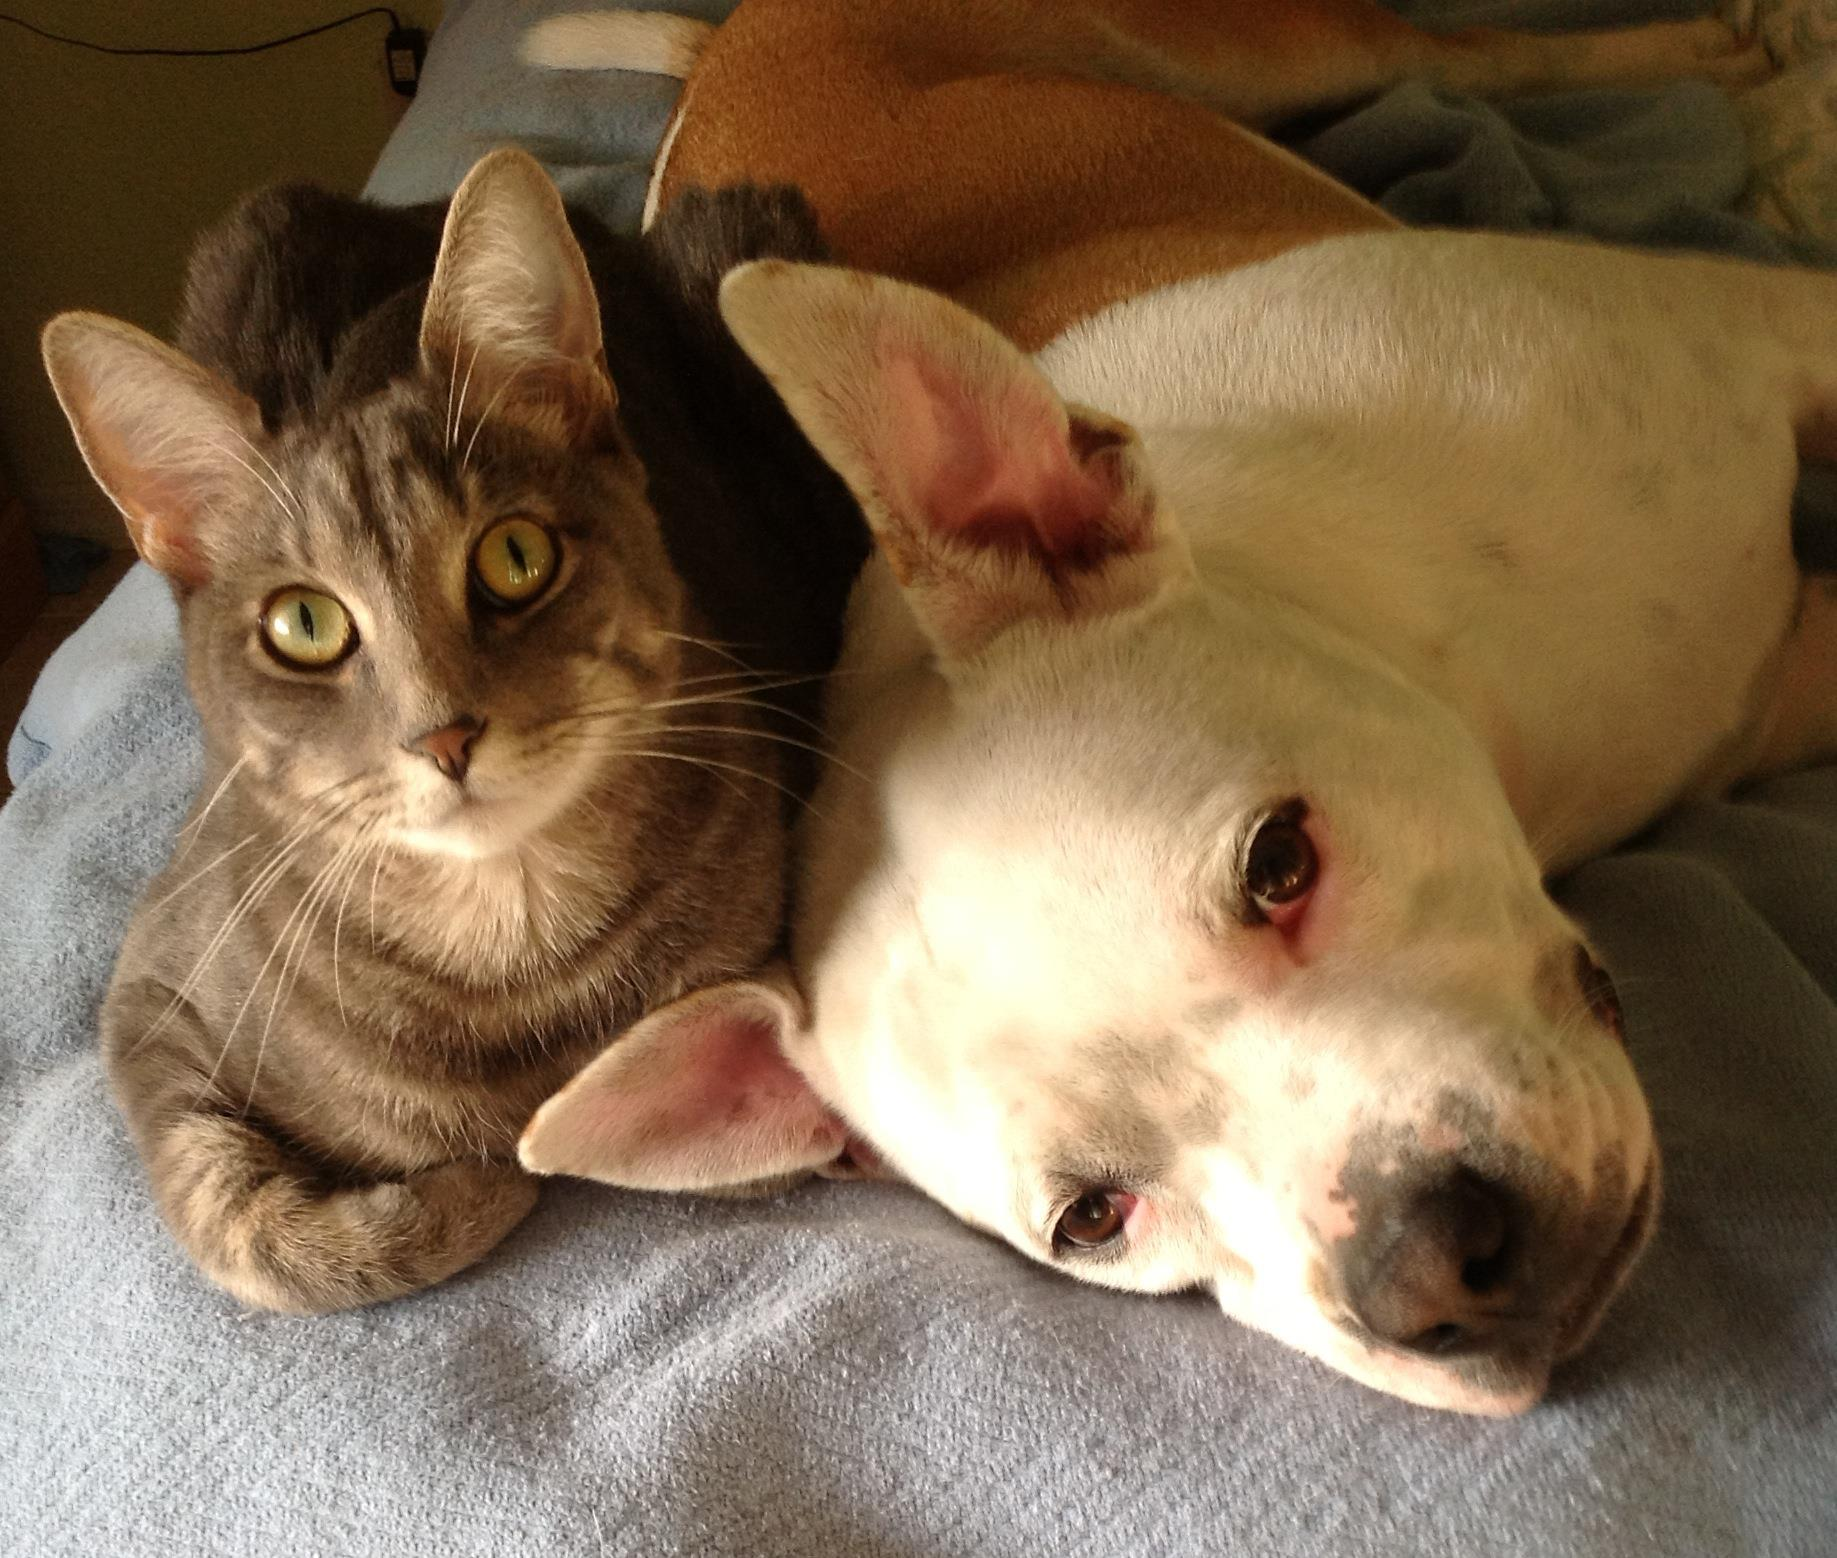 cat and dog cuddling in bed